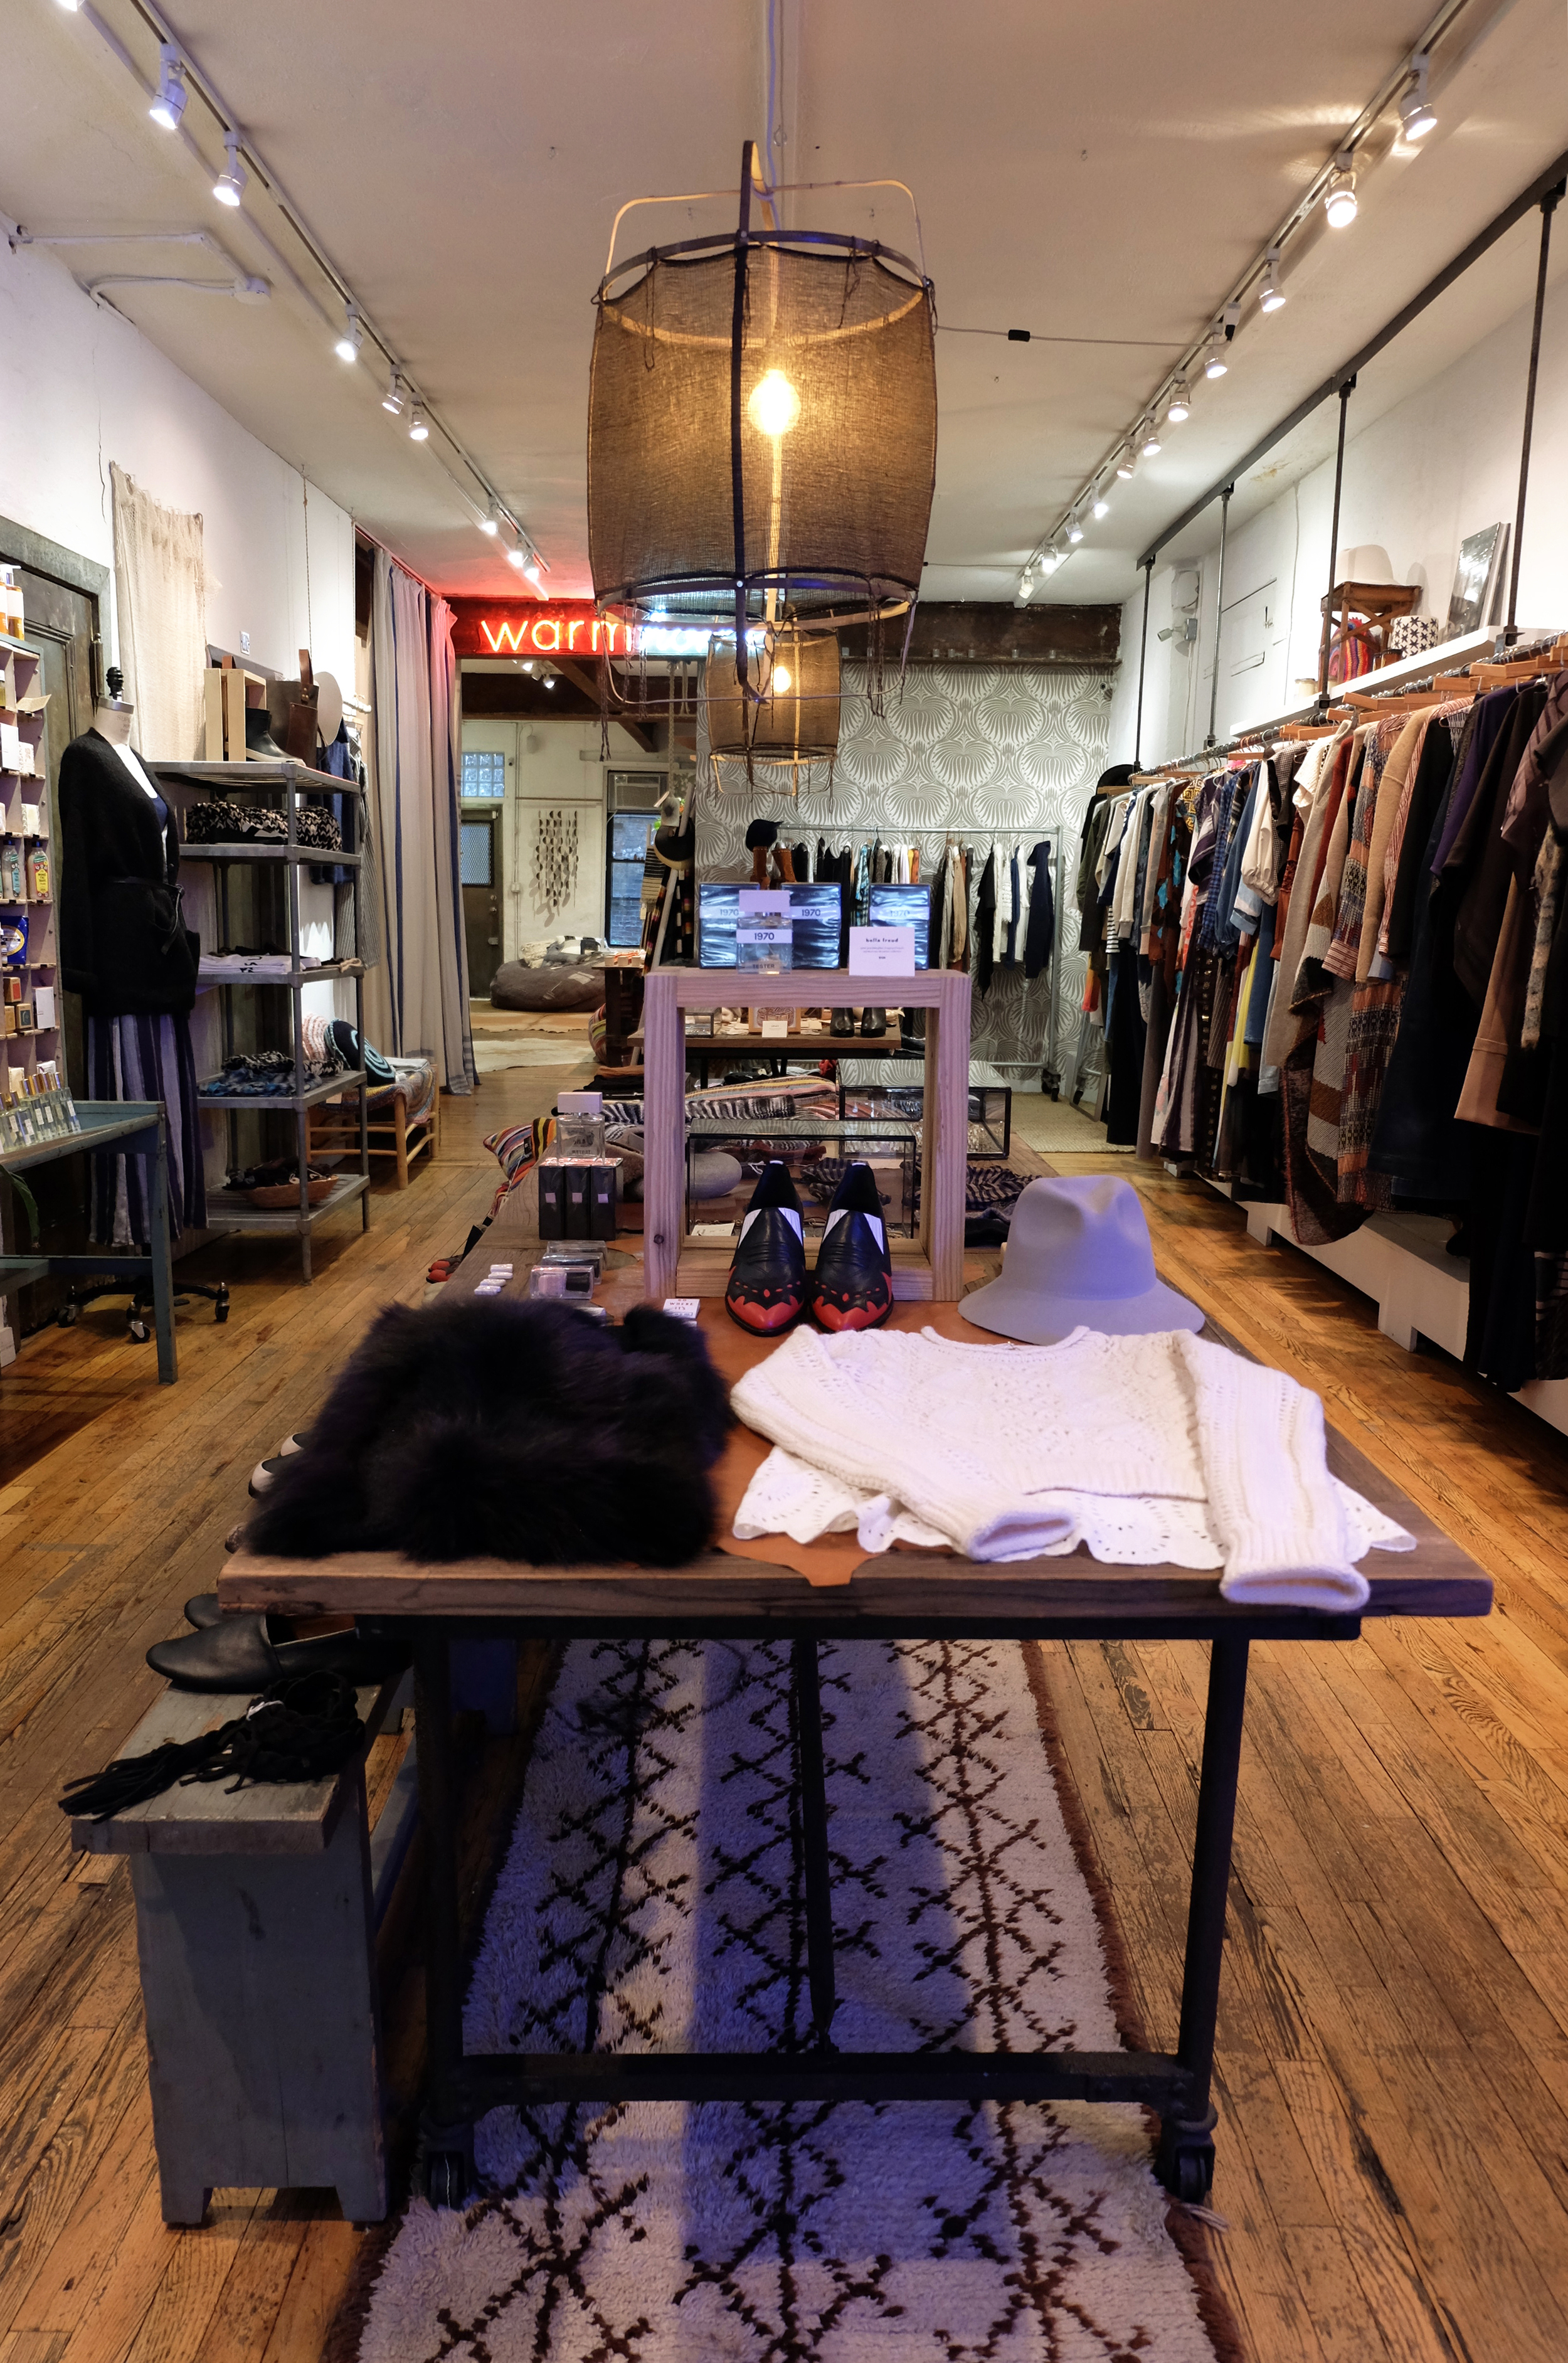 Warm  / 181 Mott Street. New York, NY 10012 / 212-925-1200  Ryan Roche wool suede hats? Roseanna print and textures? Giada Forte jackets,Mother Jeans, and Raquel Allegra tie-dye? Yes please!